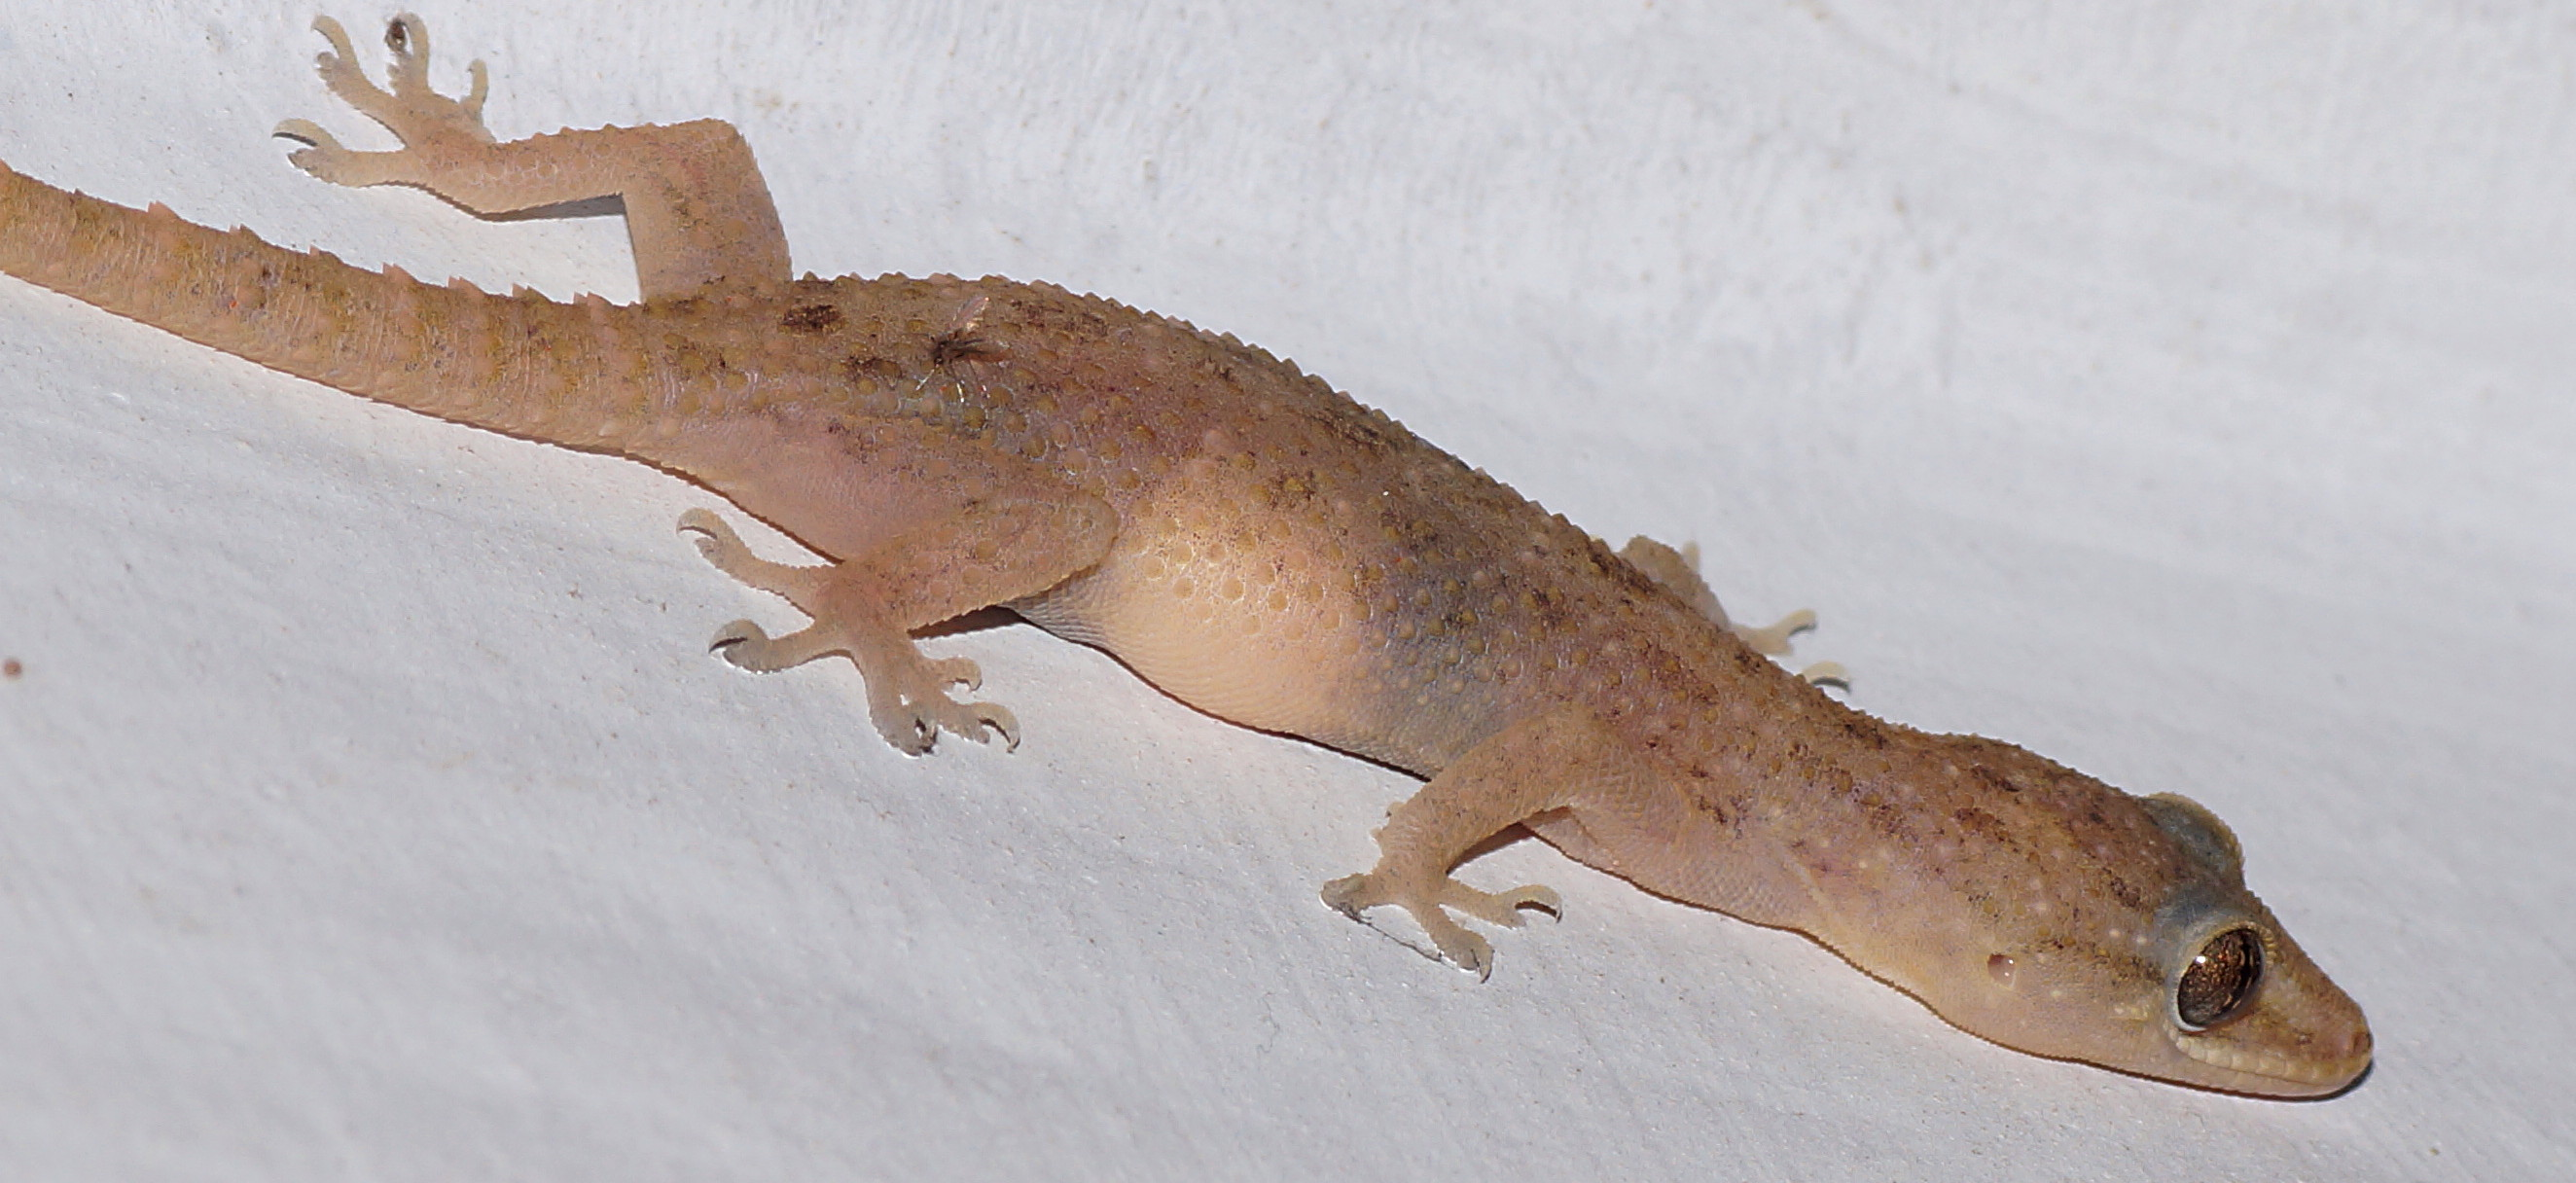 picture of house gecko - house interior